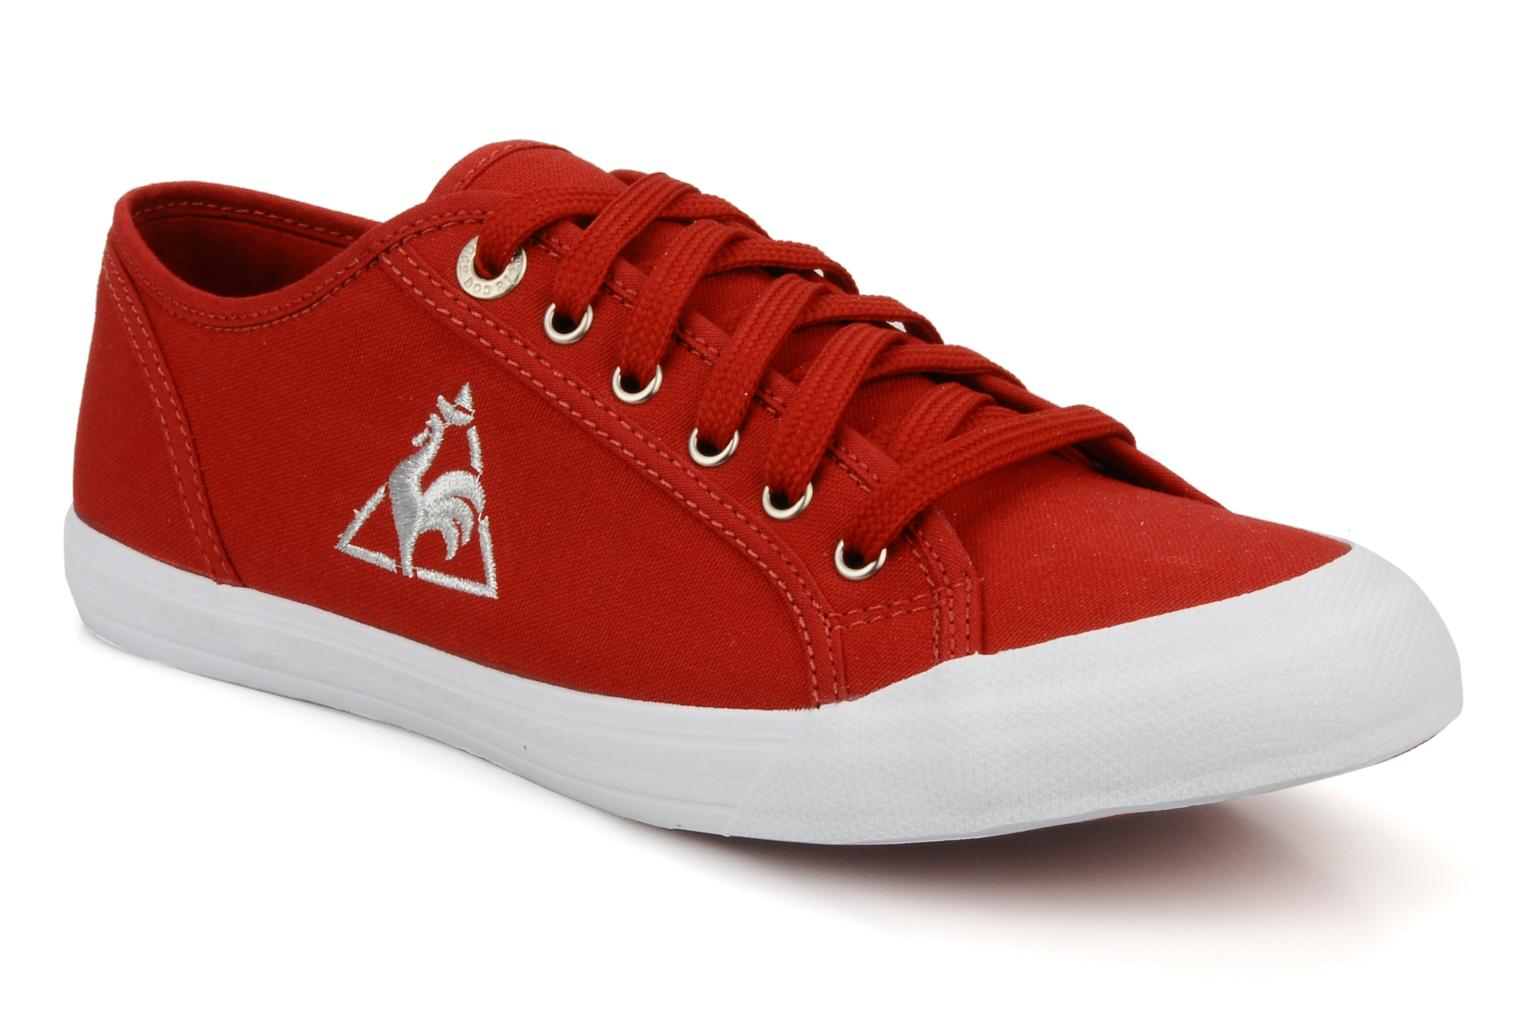 Le coq sportif deauville plus chronic trainers in red at - Le coq sportif deauville plus ...